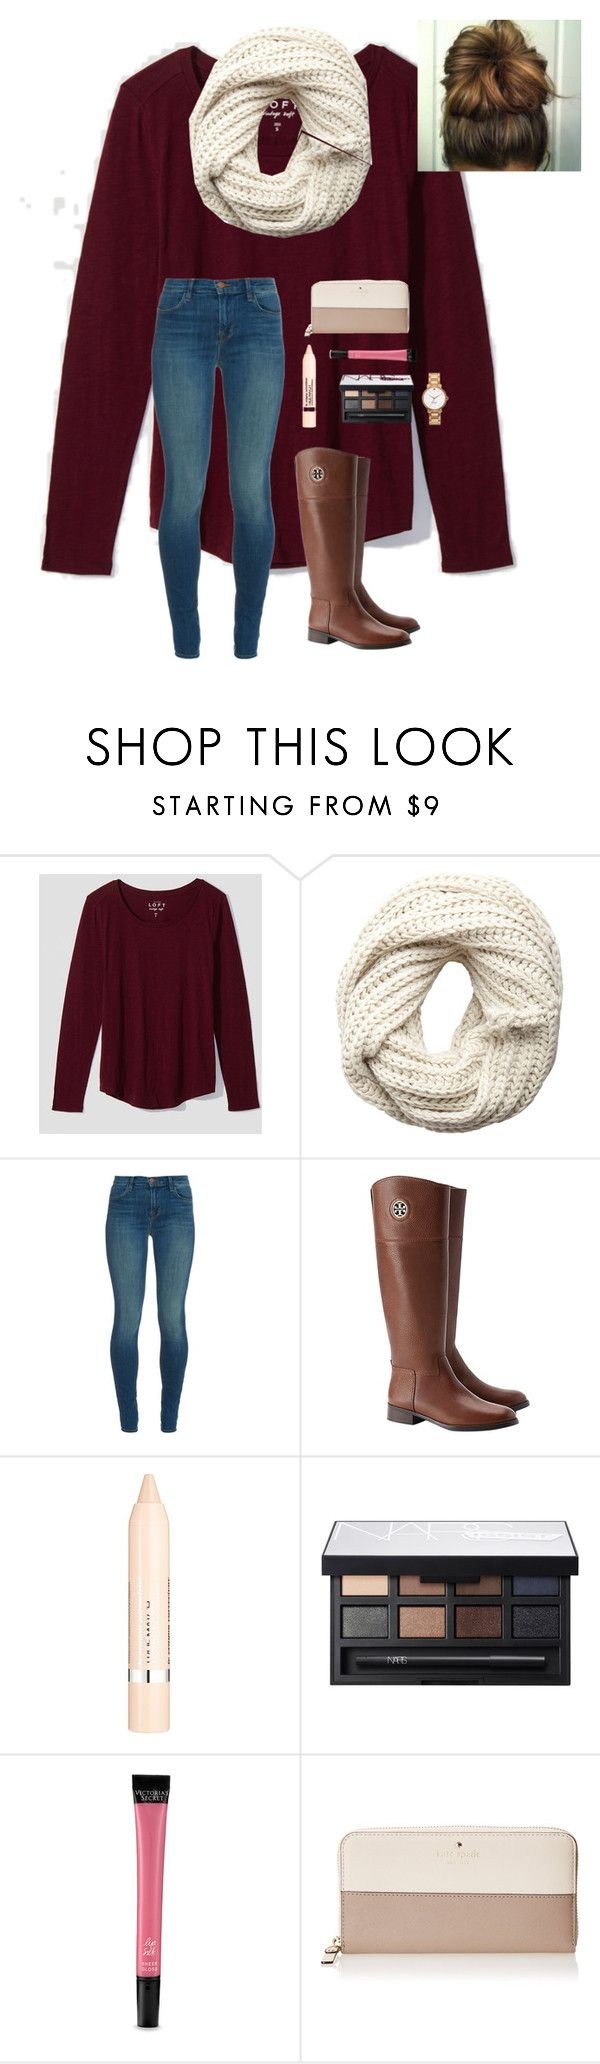 """""""Day 1:Thanksgiving"""" by a-devo ❤ liked on Polyvore featuring LOFT, Pieces, J Brand, Tory Burch, L'Oréal Paris, NARS Cosmetics, Victoria's Secret, Kate Spade and 30DaysOfChristmas2k16"""